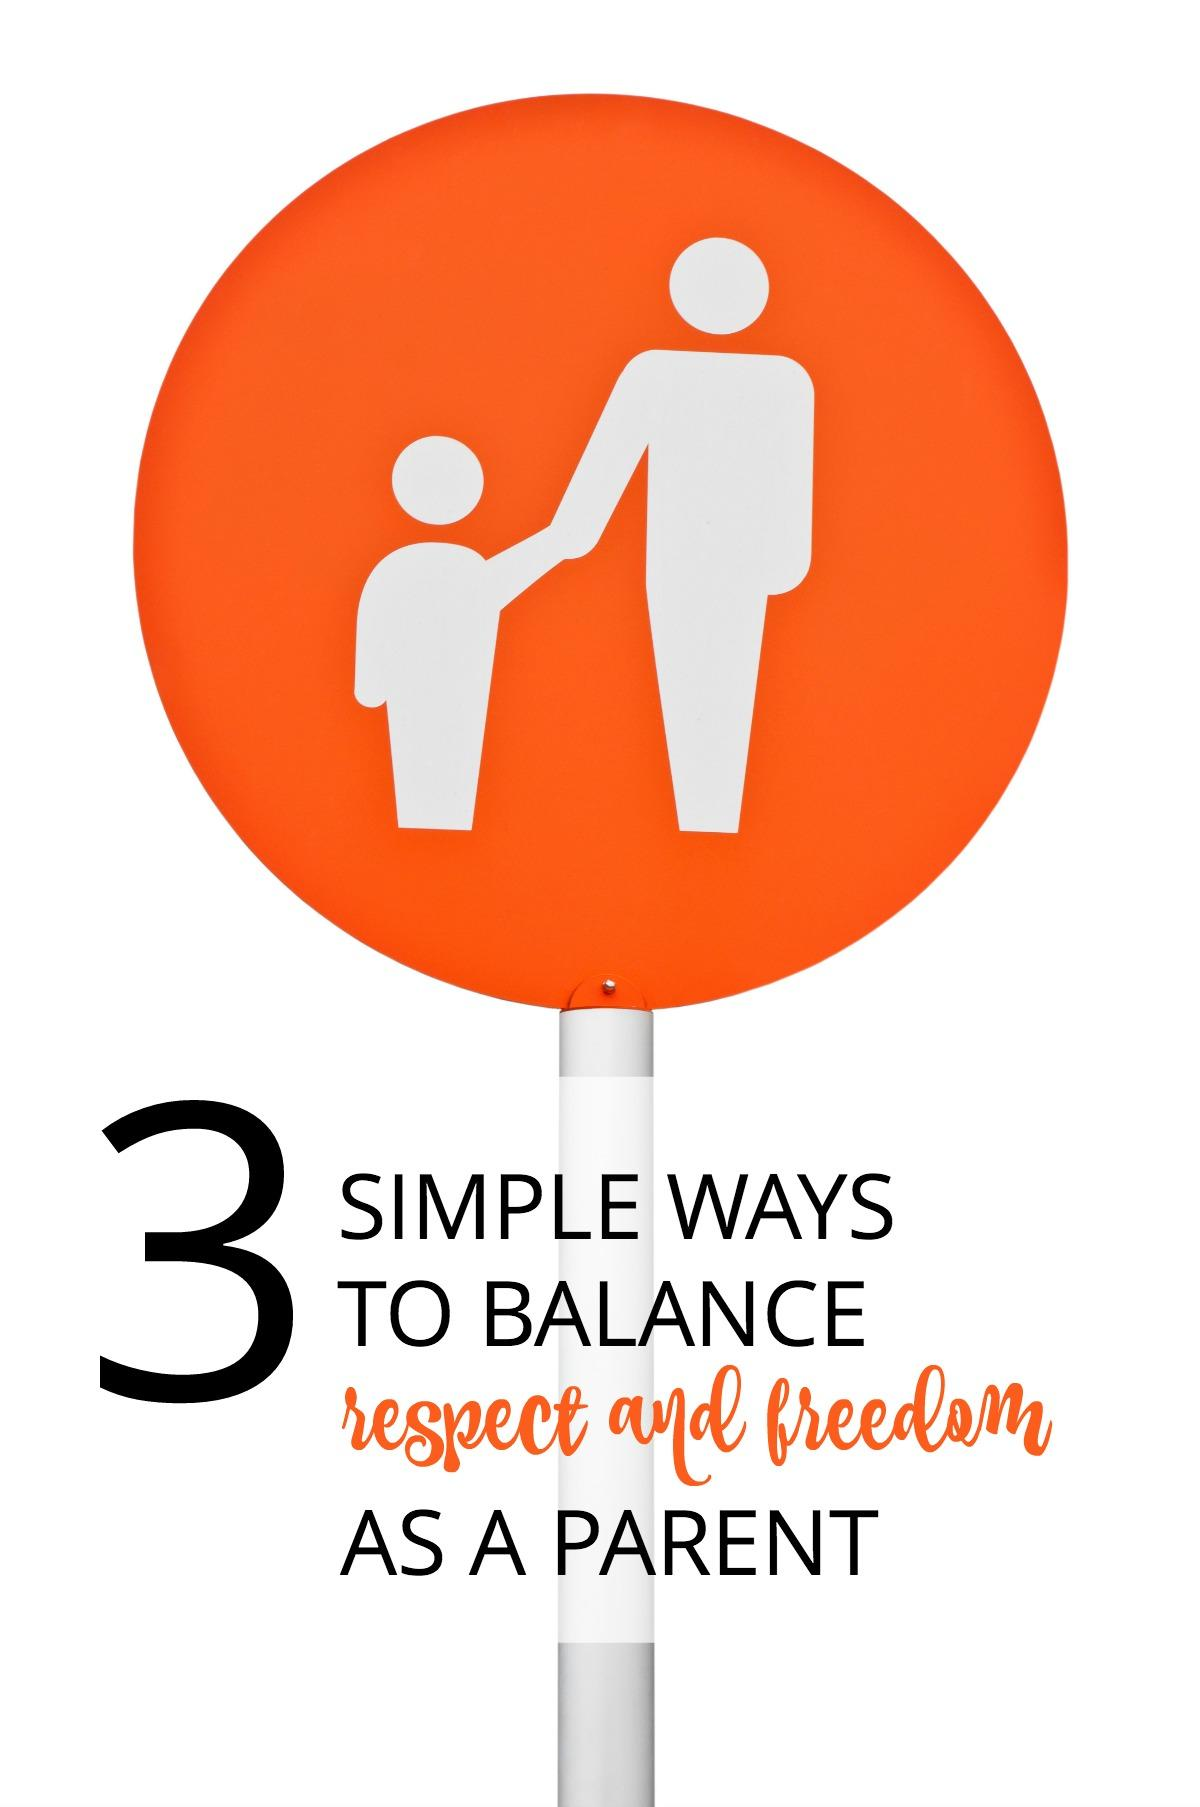 Parents want to give our children freedom, but how do you balance that with authority and respect? A parenting expert shares 3 tips to make sure you remain in the driver's seat as a parent.